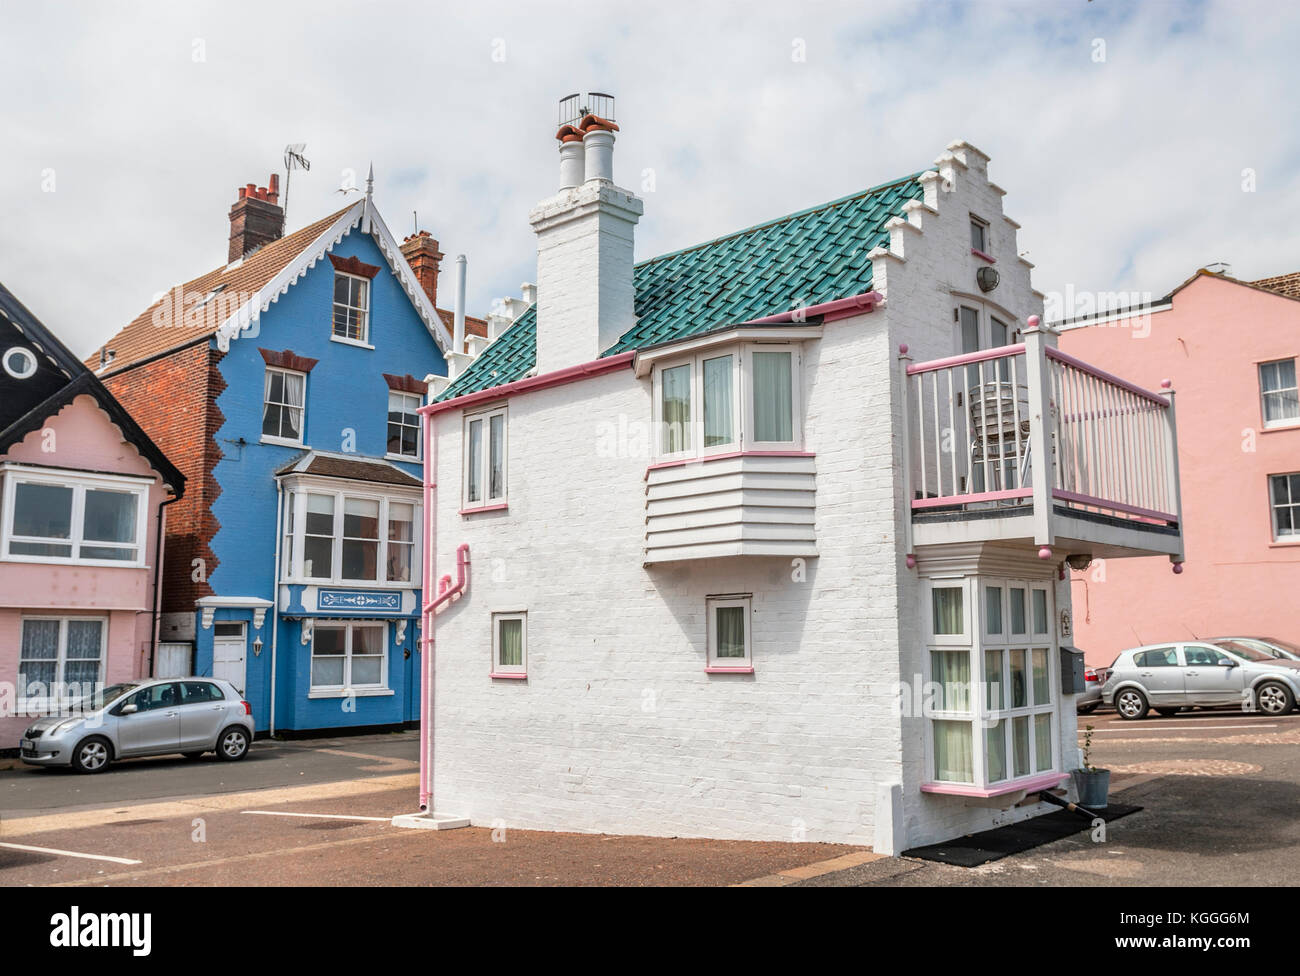 Small historical house in Aldeburgh, a coastal town in Suffolk, East Anglia, England. - Stock Image